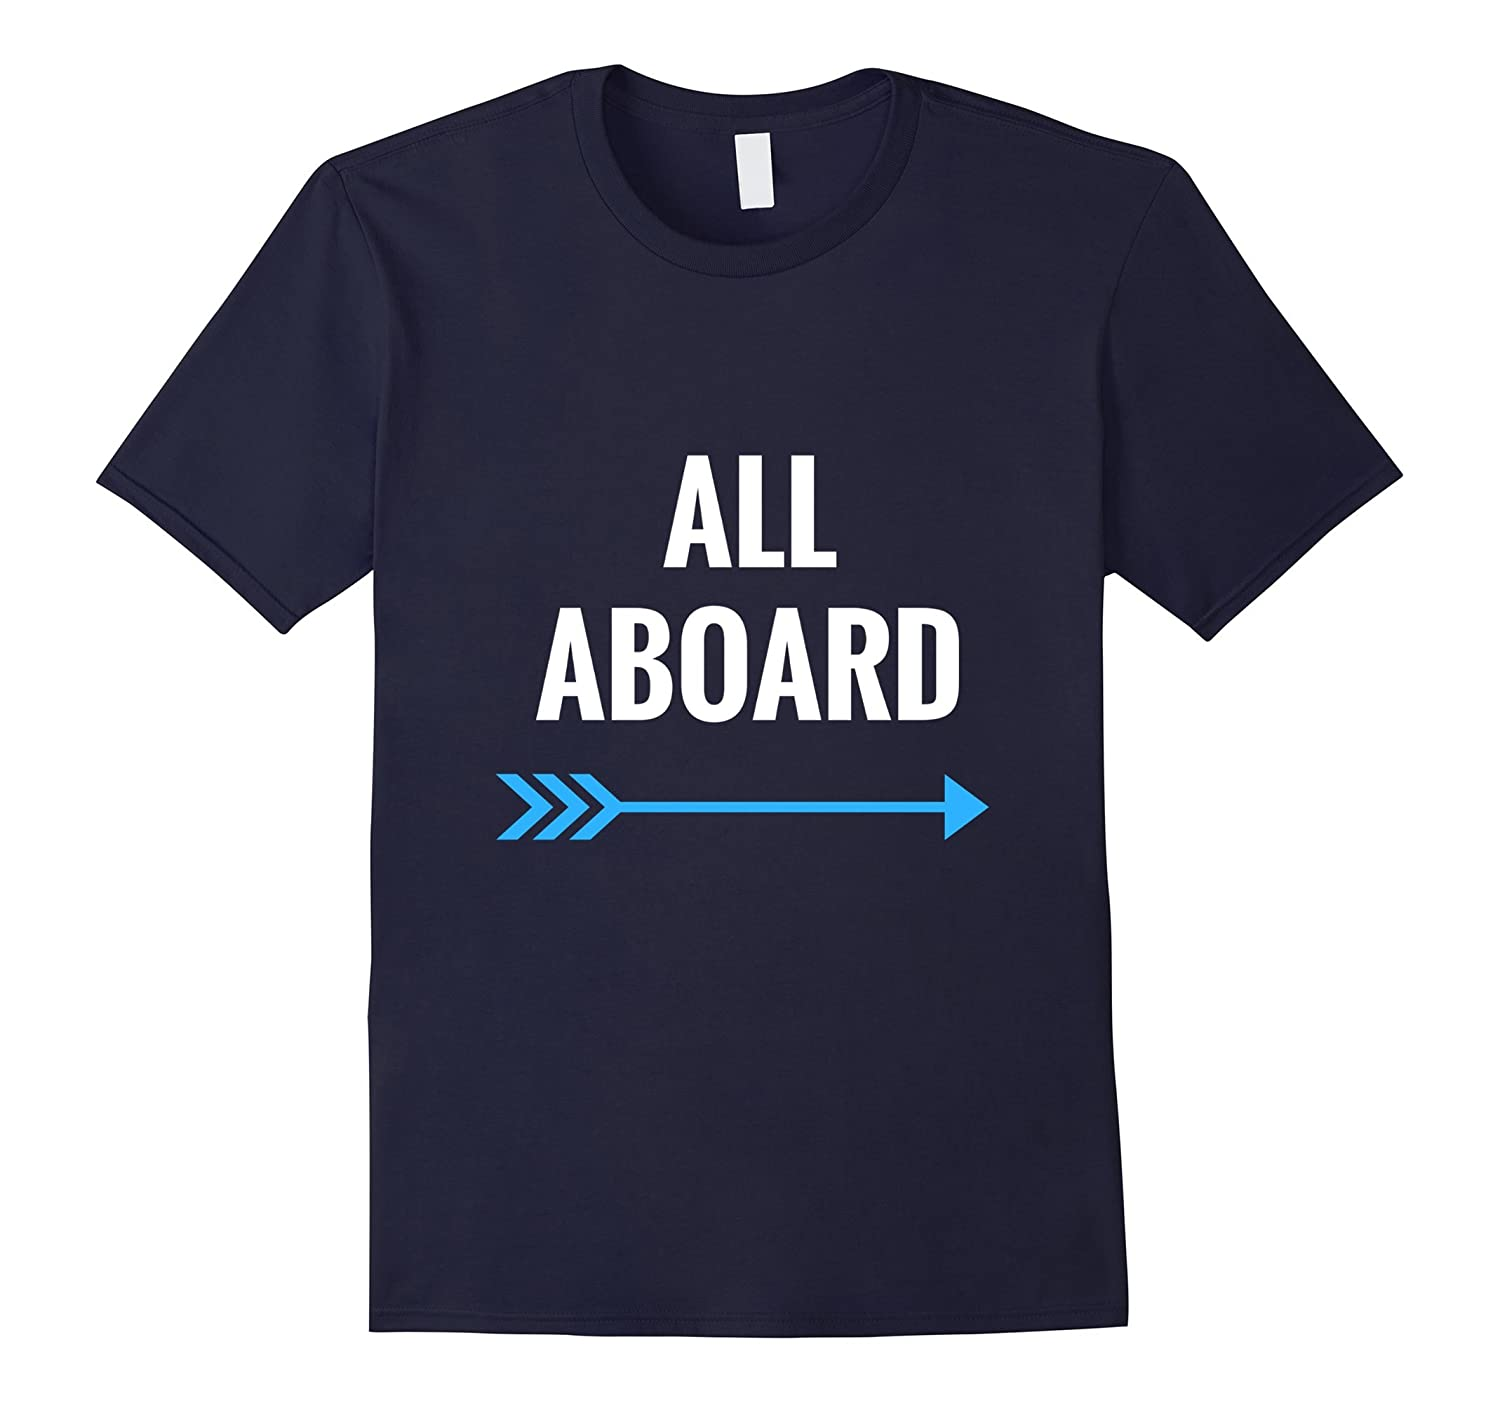 All Aboard Train TShirt - Railfan Shirt - Model Railroad Tee-TD